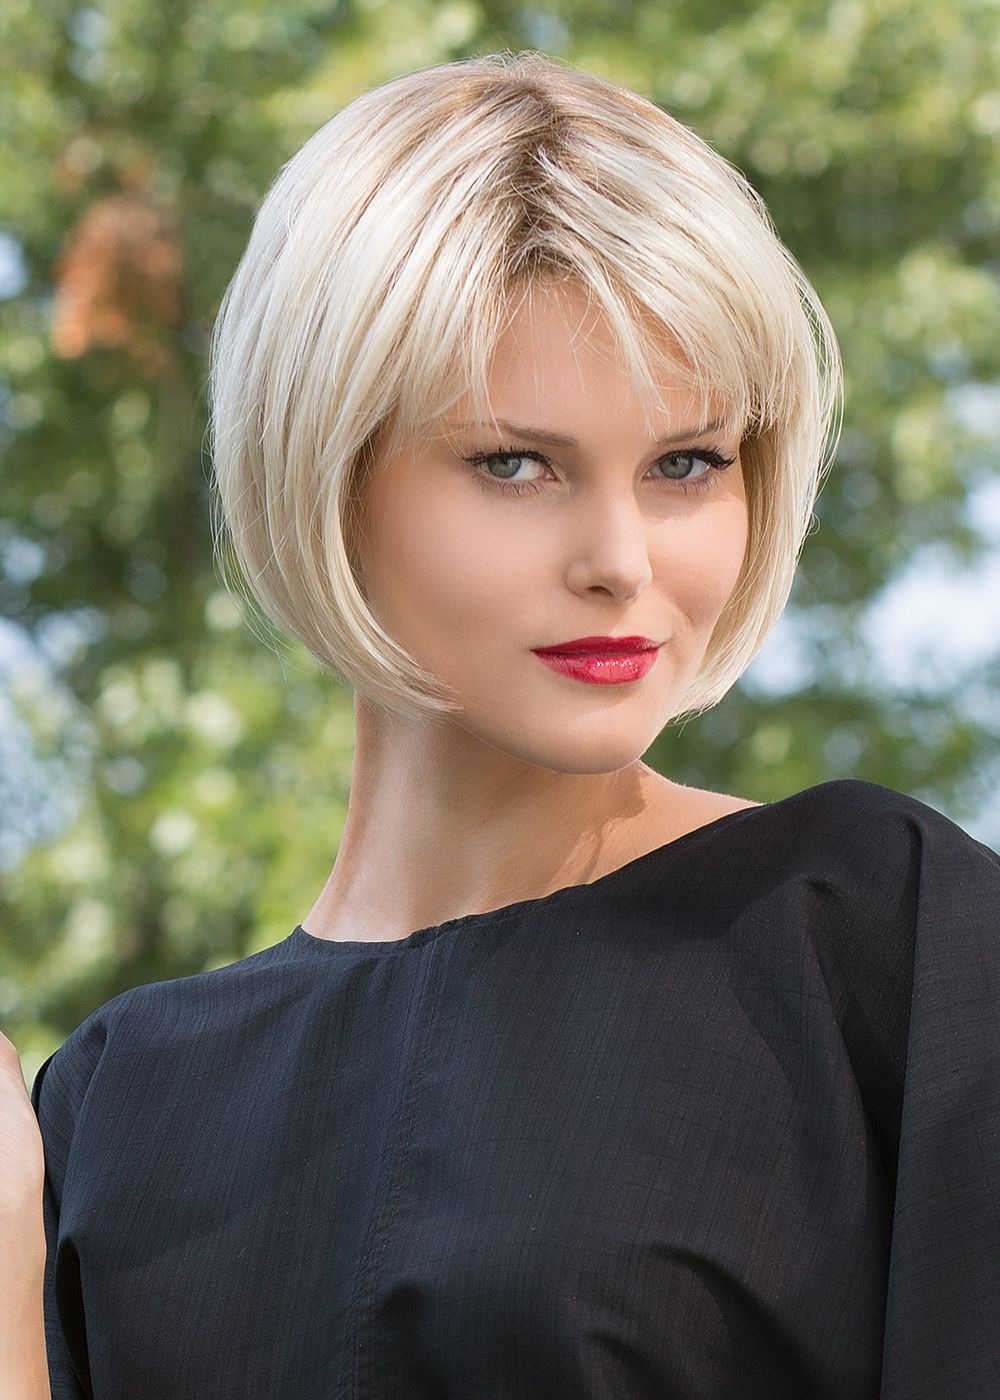 Platinum-Blonde.-4 Top 10 Hair Color Trends for Blonde Women in 2021